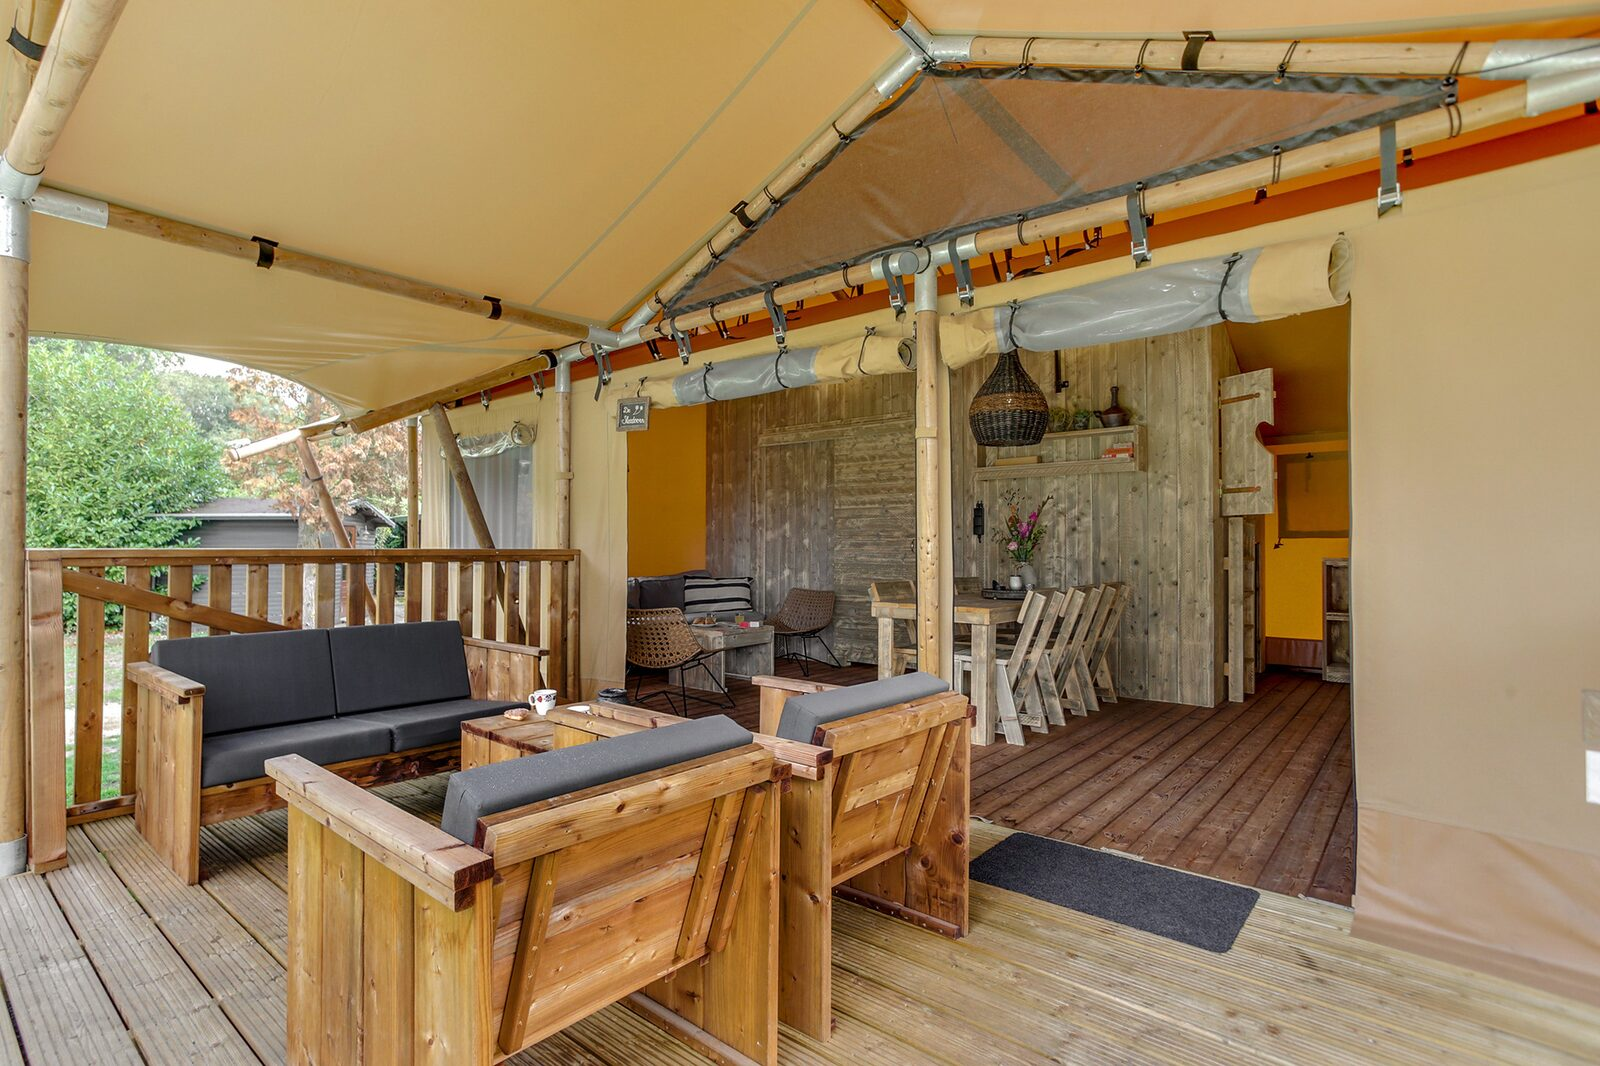 11. Cluster Dune Lodge 6 + 2-person